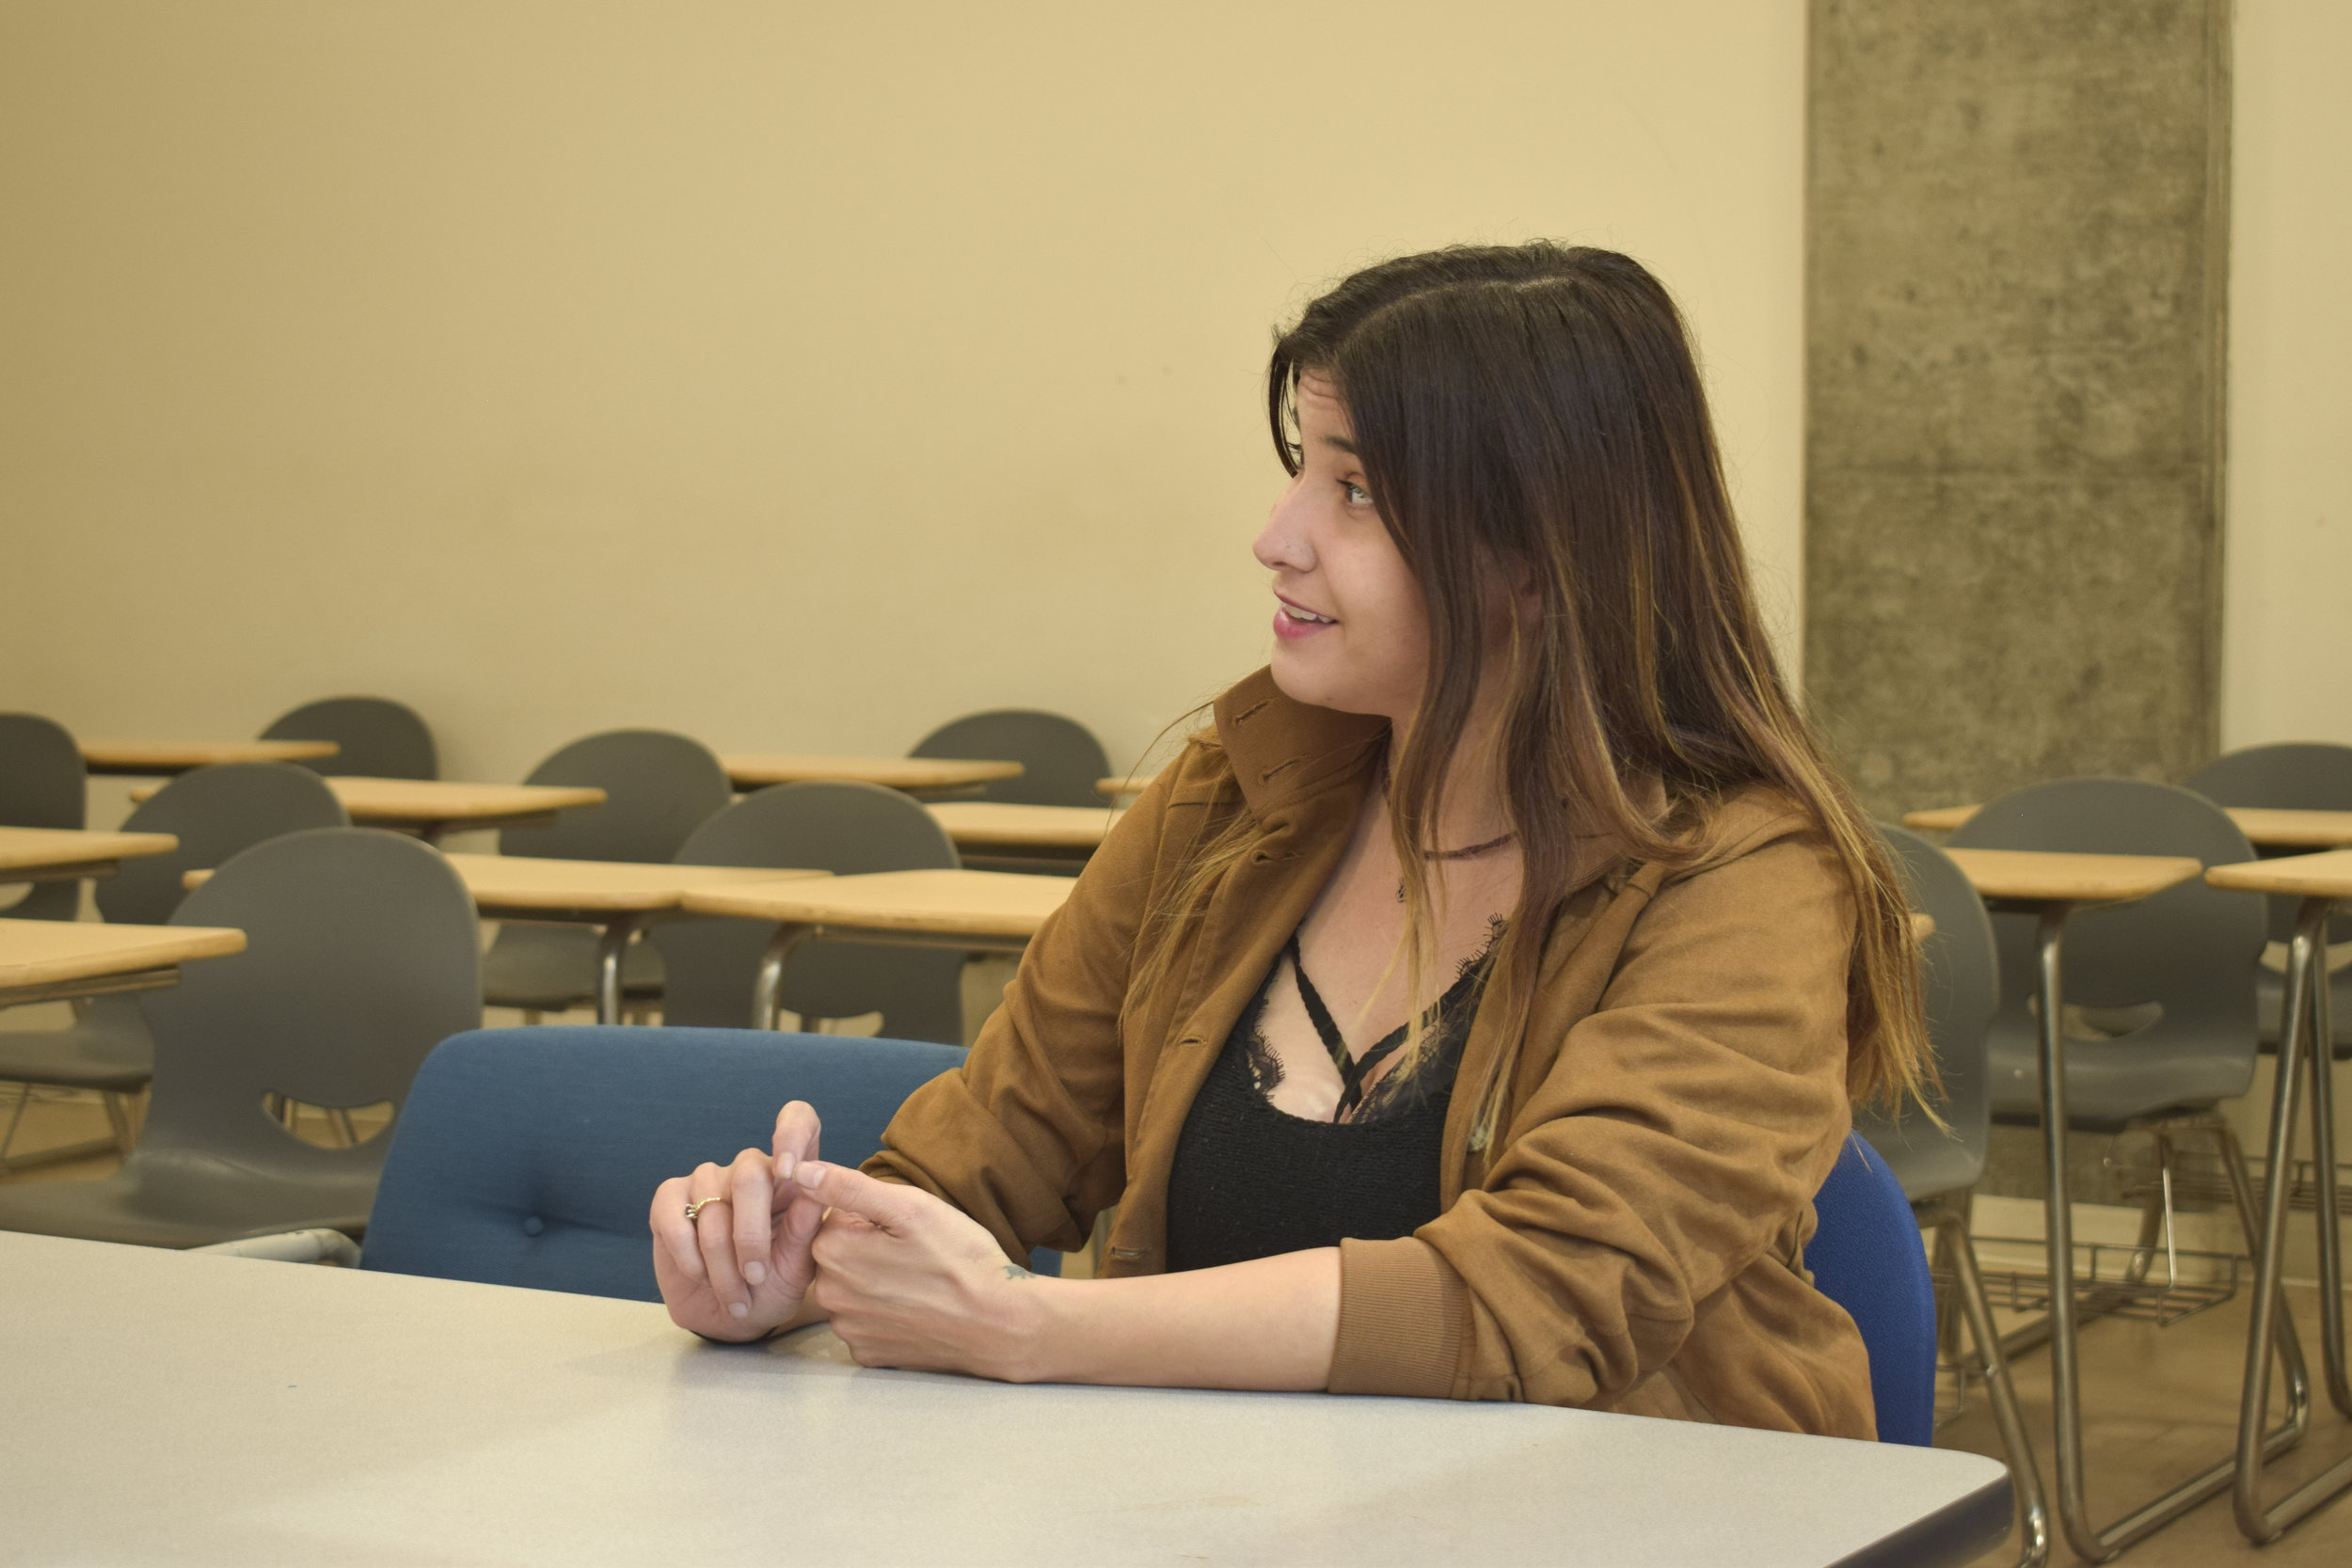 Brie Elise, president of the Women in Media Club, talking to the corsair about what she hopes to accomplish with the club and to someday have the club grow and include others besides SMC students. Tuesday May 8, 2018. Santa Monica, California.  (Diana Parra Garcia/Corsair Photo)